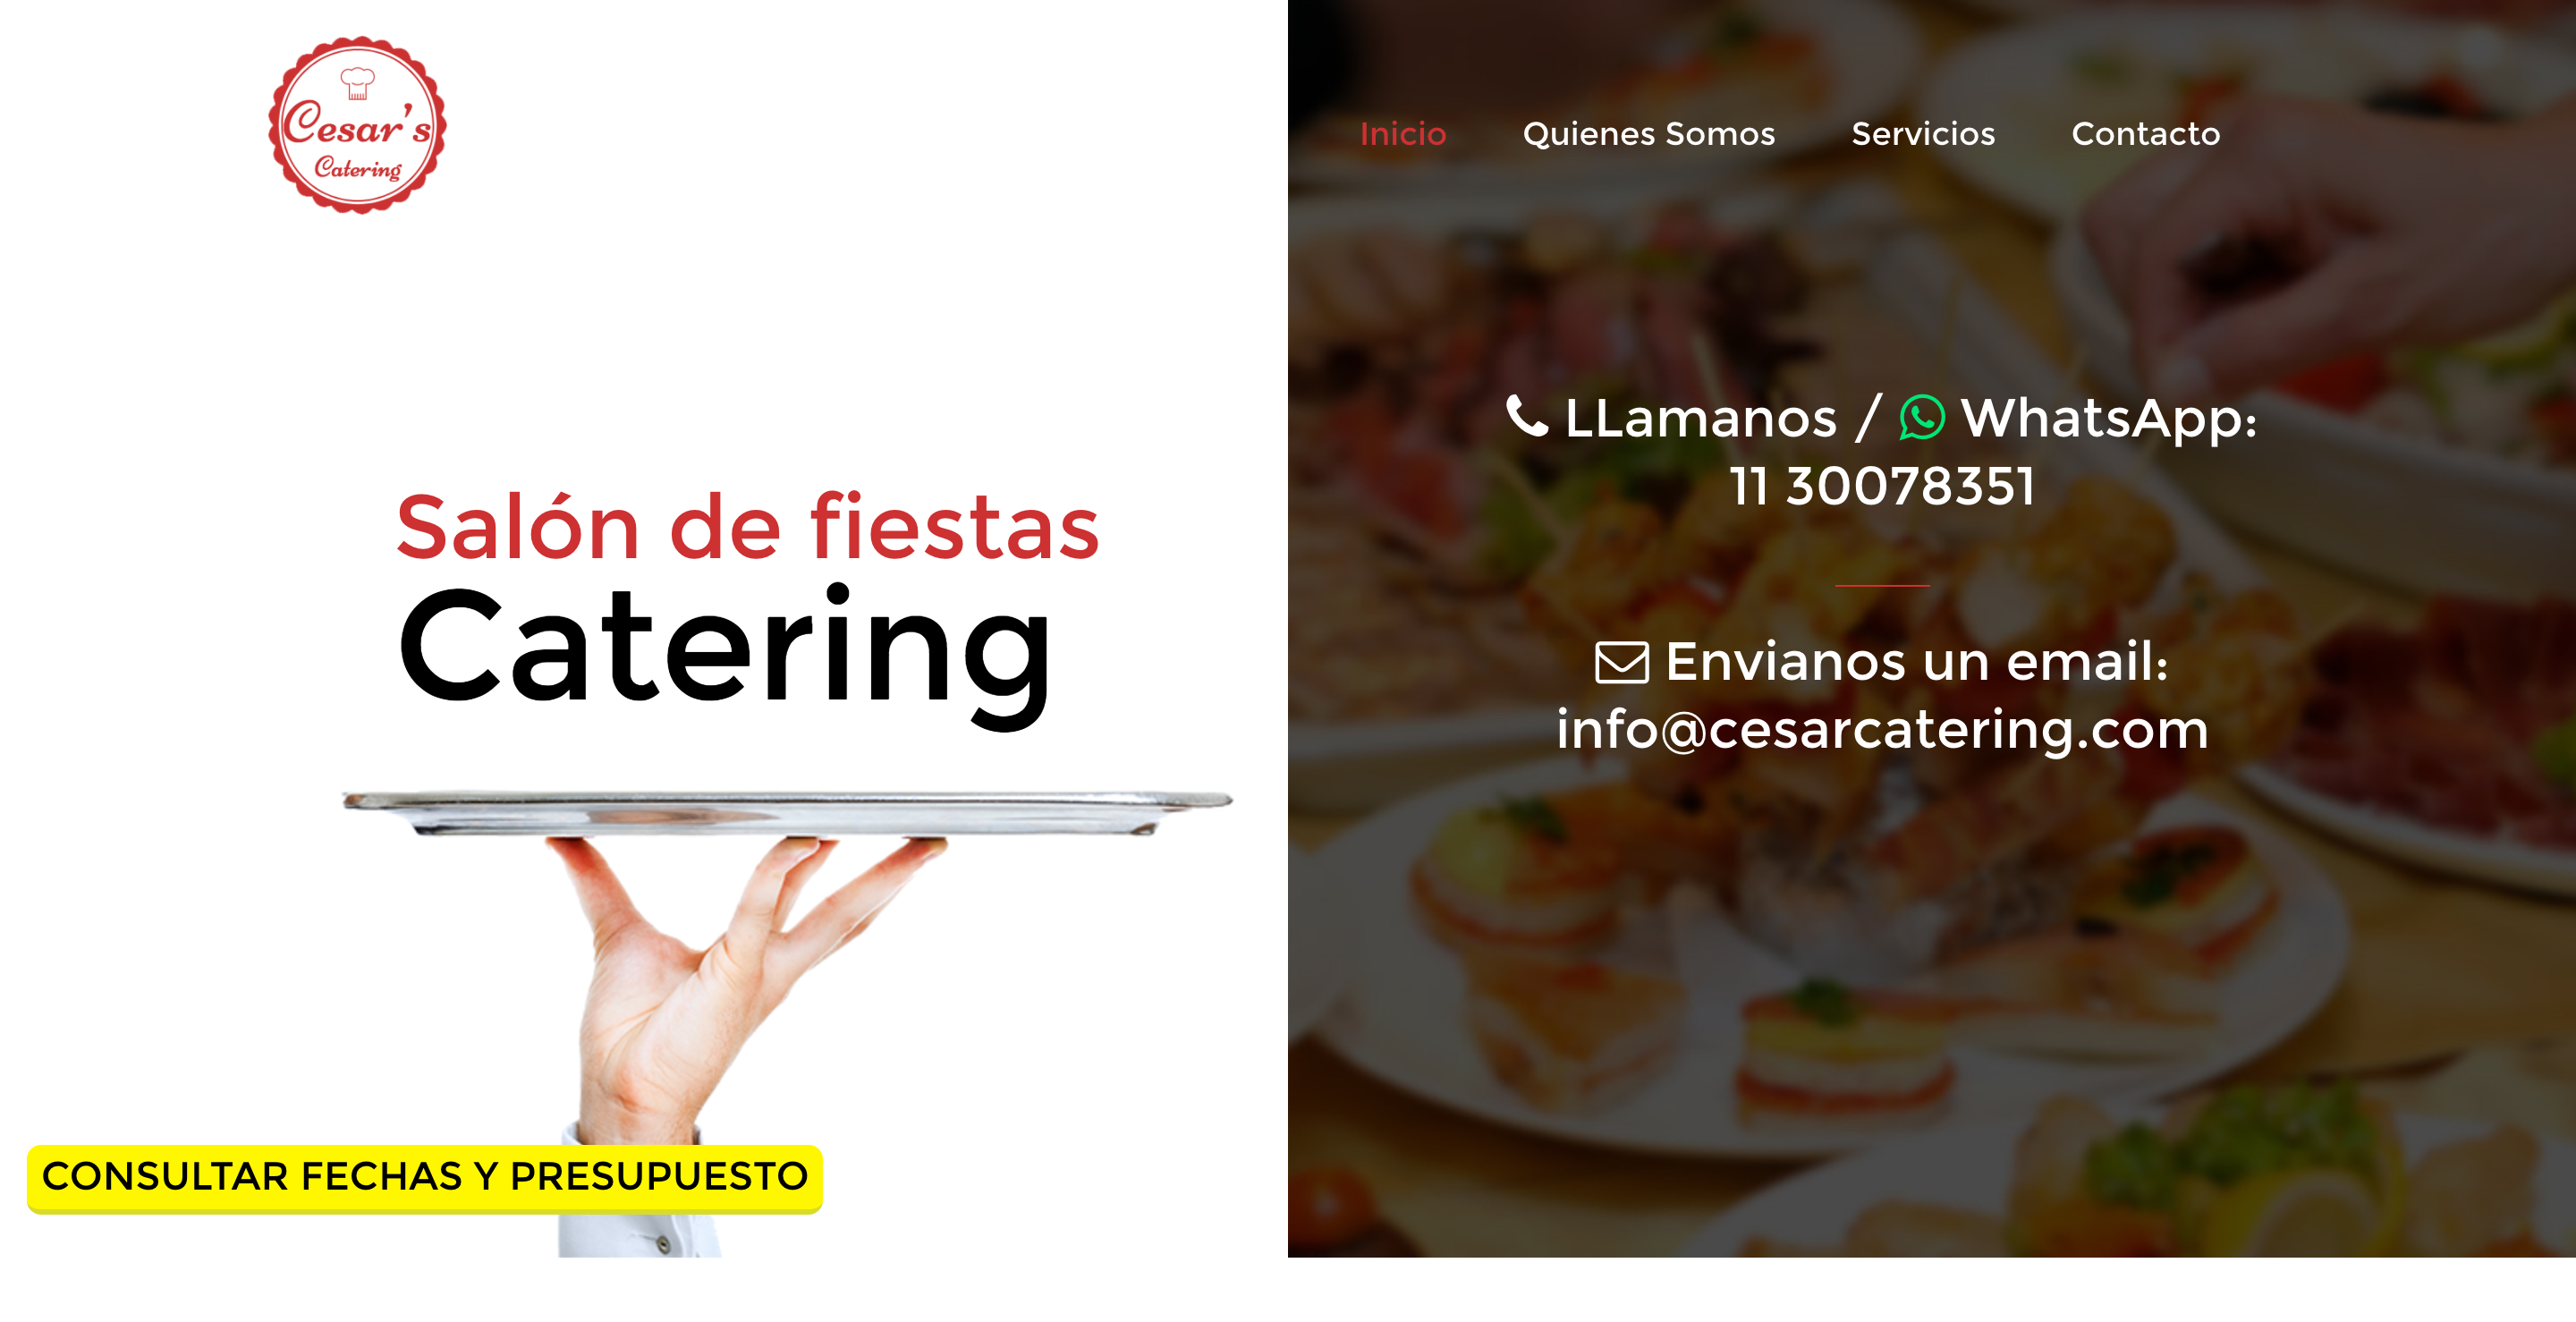 Cesar's Catering